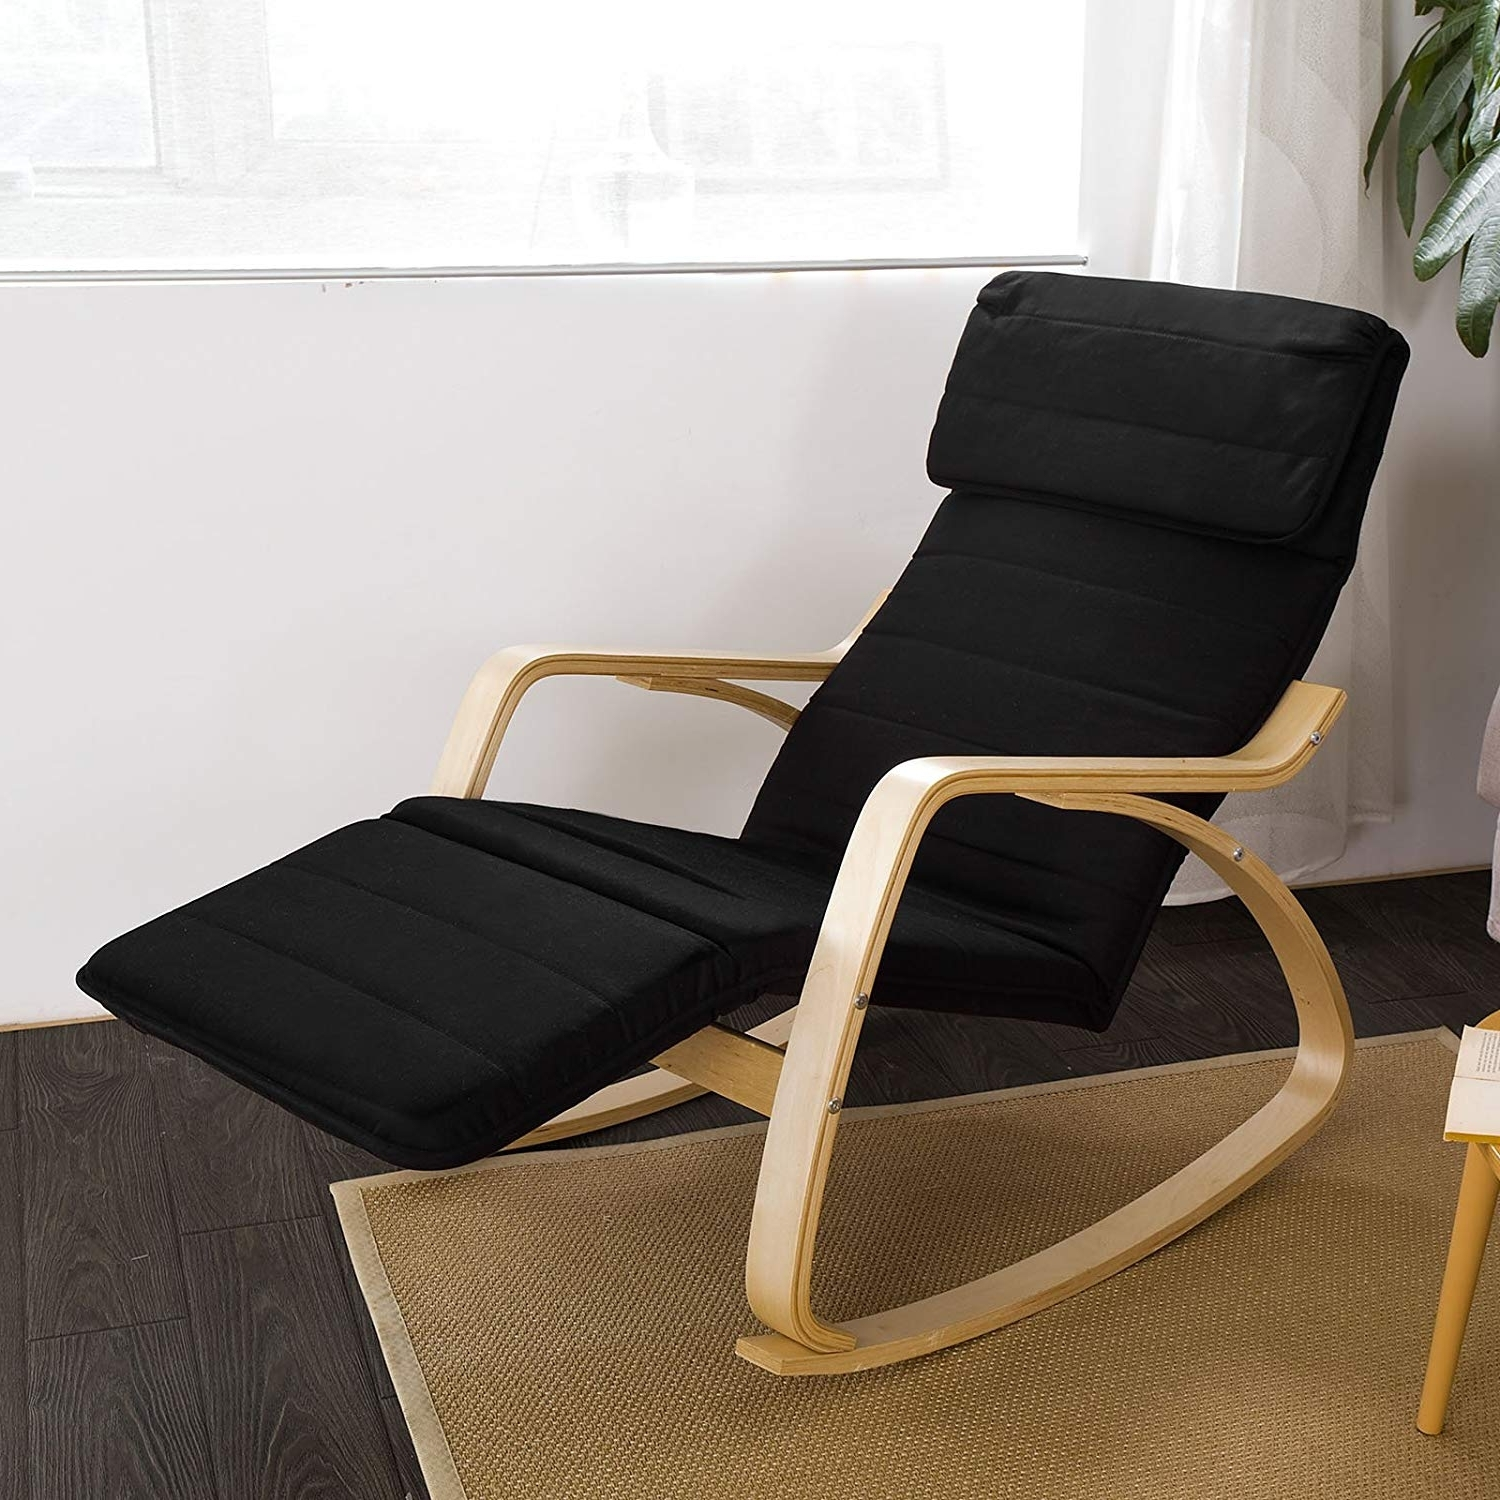 Amazon: Haotian Comfortable Relax Rocking Chair With Foot Rest regarding Current Rocking Chairs With Footrest